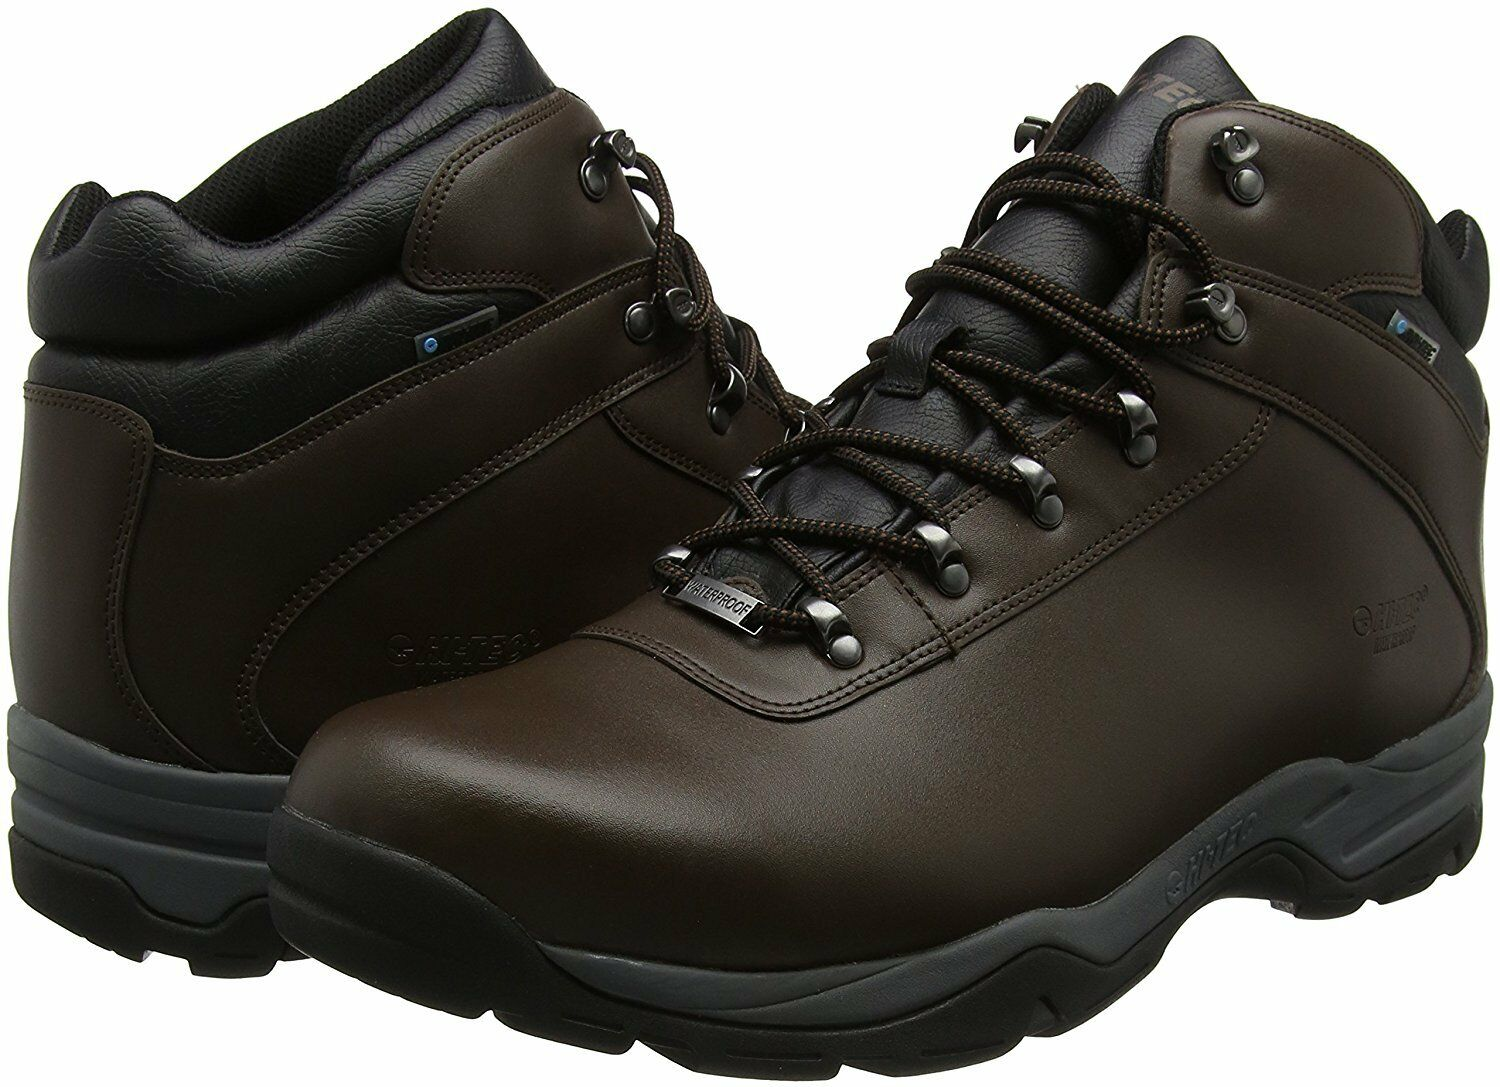 Mens Hi Tec Leather Walking Trainers Hiking Waterproof Ankle Boots Trainers Walking Shoes Size 0b5ab6